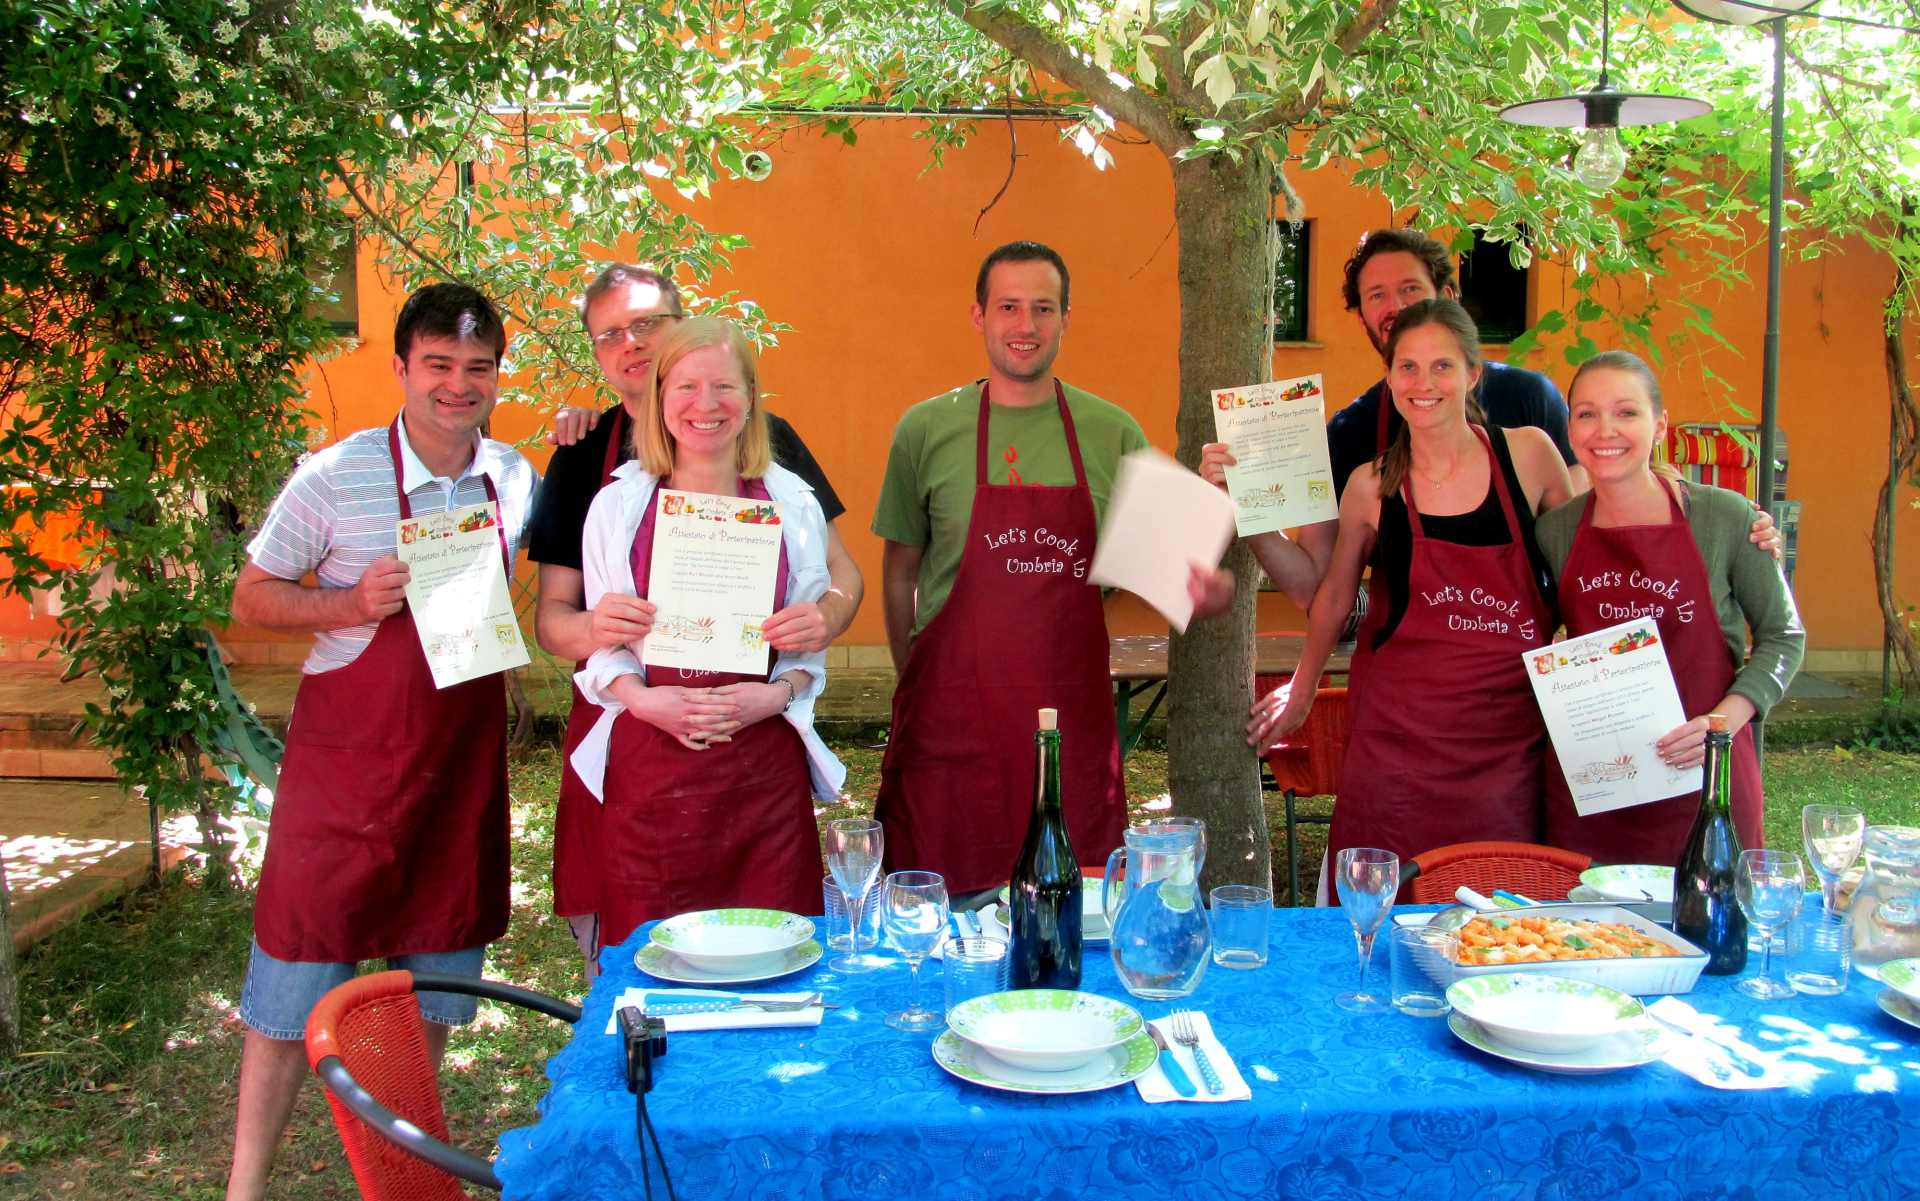 cheap italian cooking holidays in tuscany - photo#1